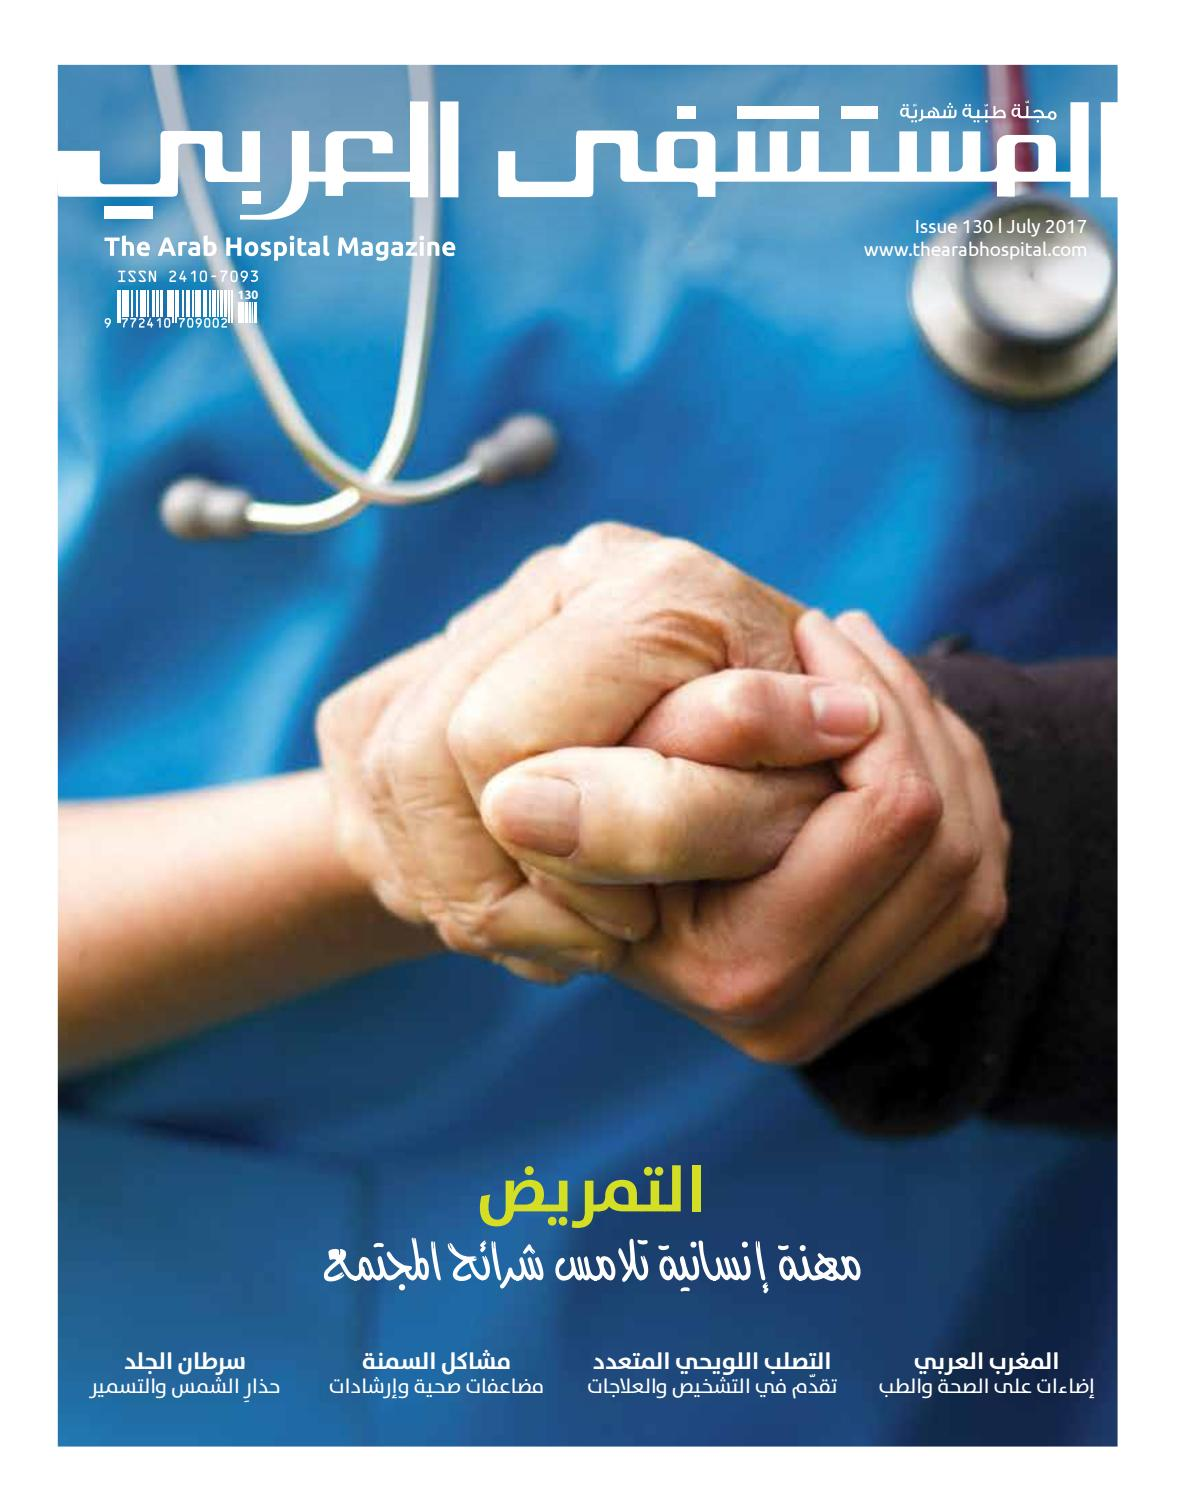 19b16029a The Arab Hospital Magazine issue 130 by The Arab Hospital Magazine - issuu